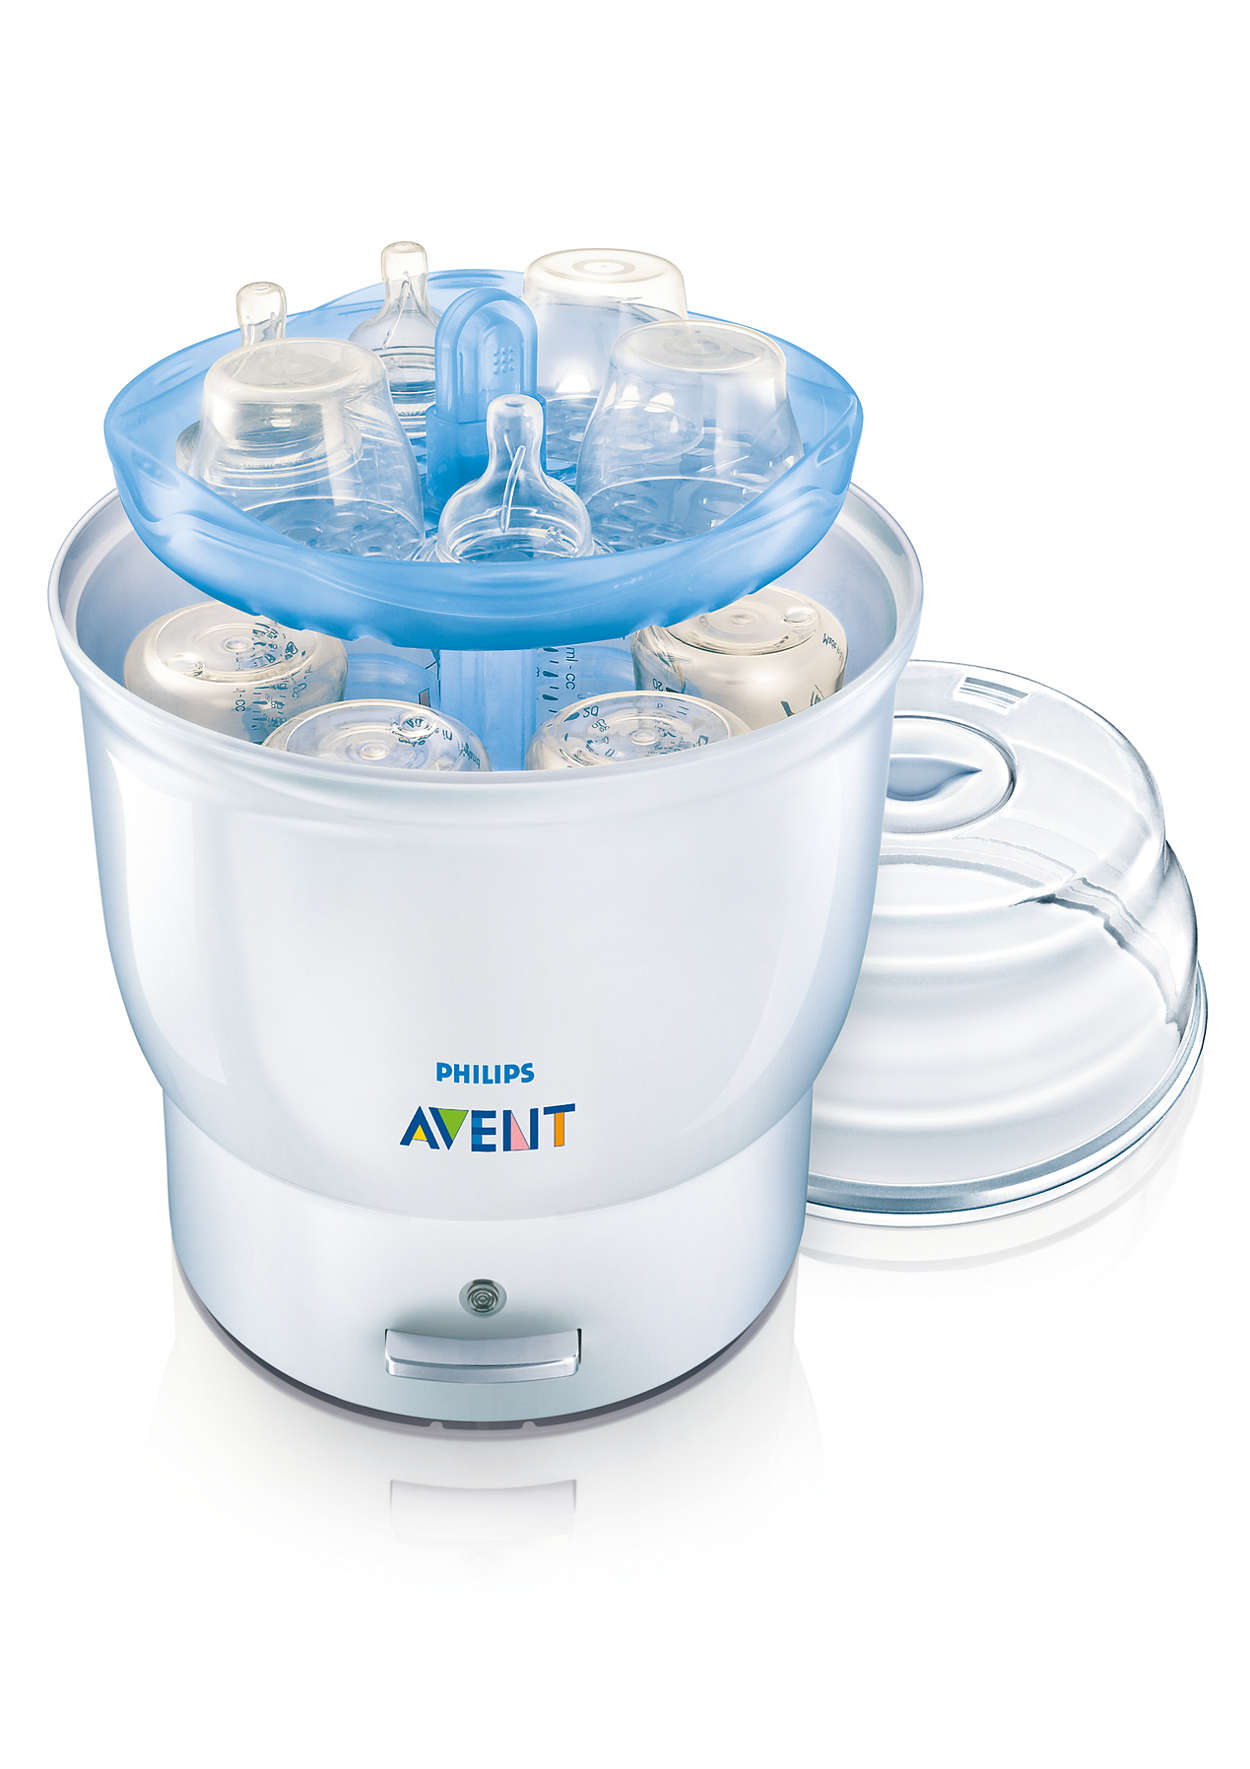 Sterilizes 6 bottles in 8 minutes